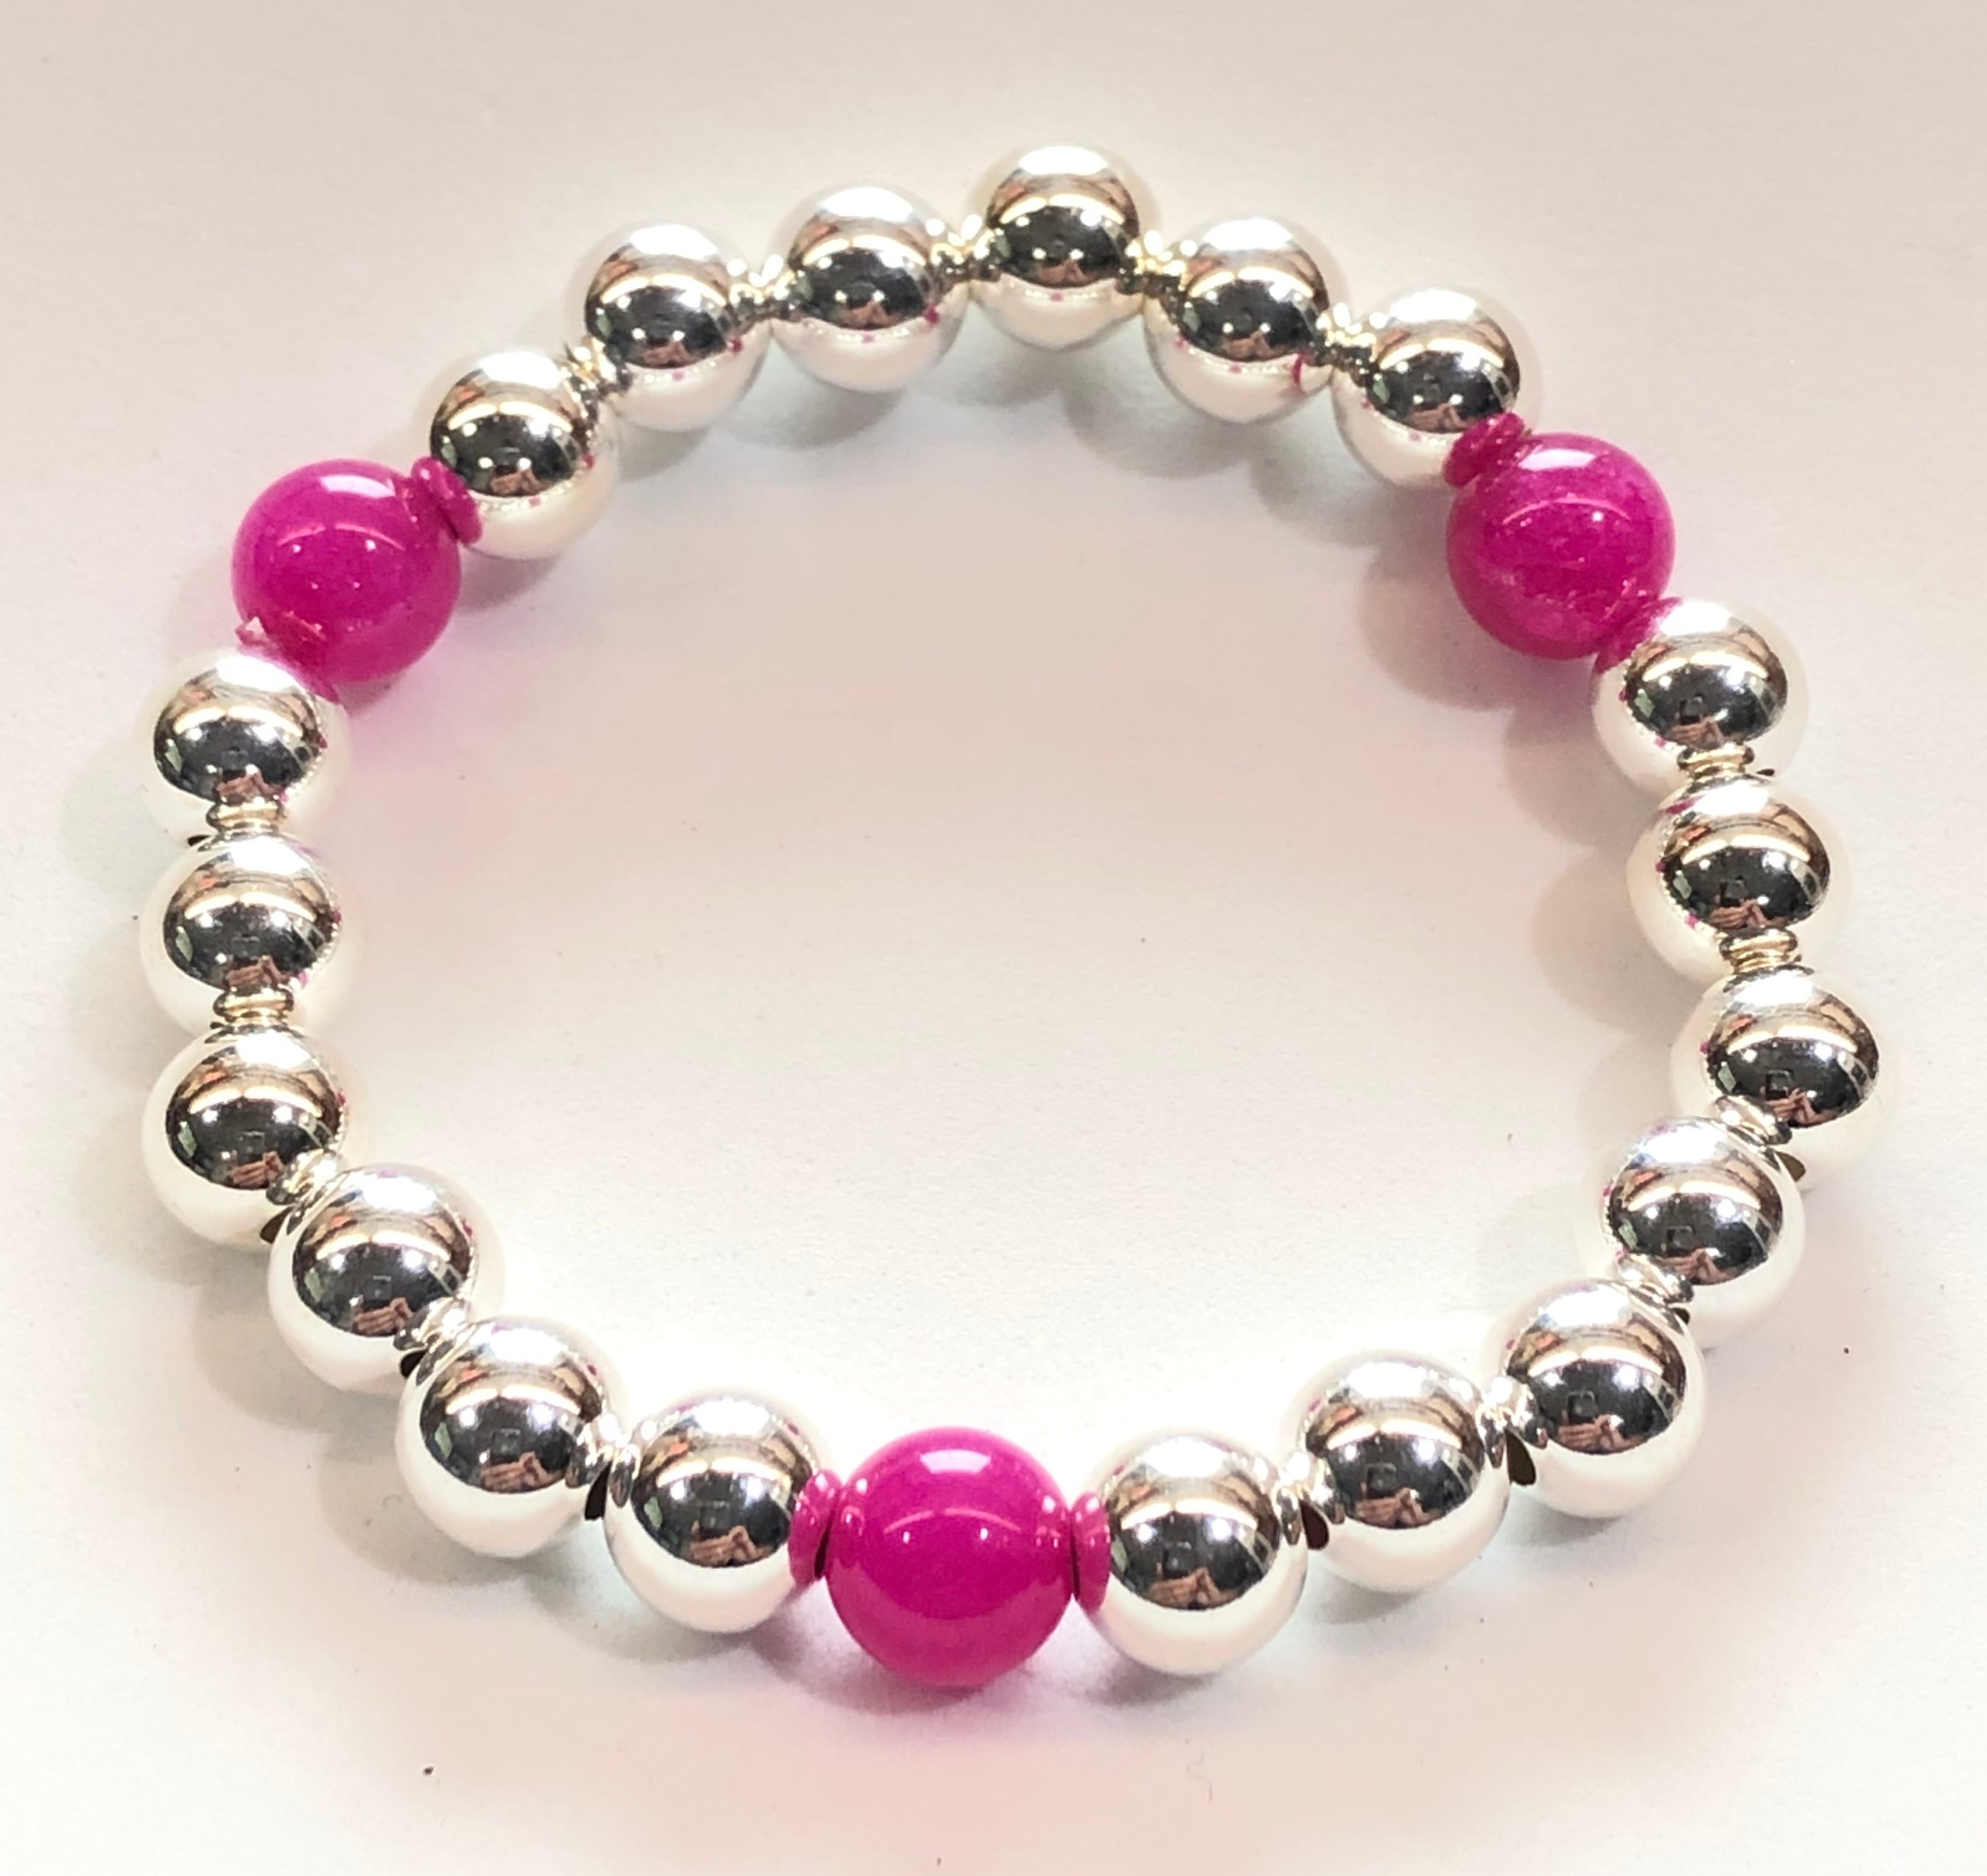 6mm Sterling Silver Bracelet with 3 6mm Hot Pink Jade